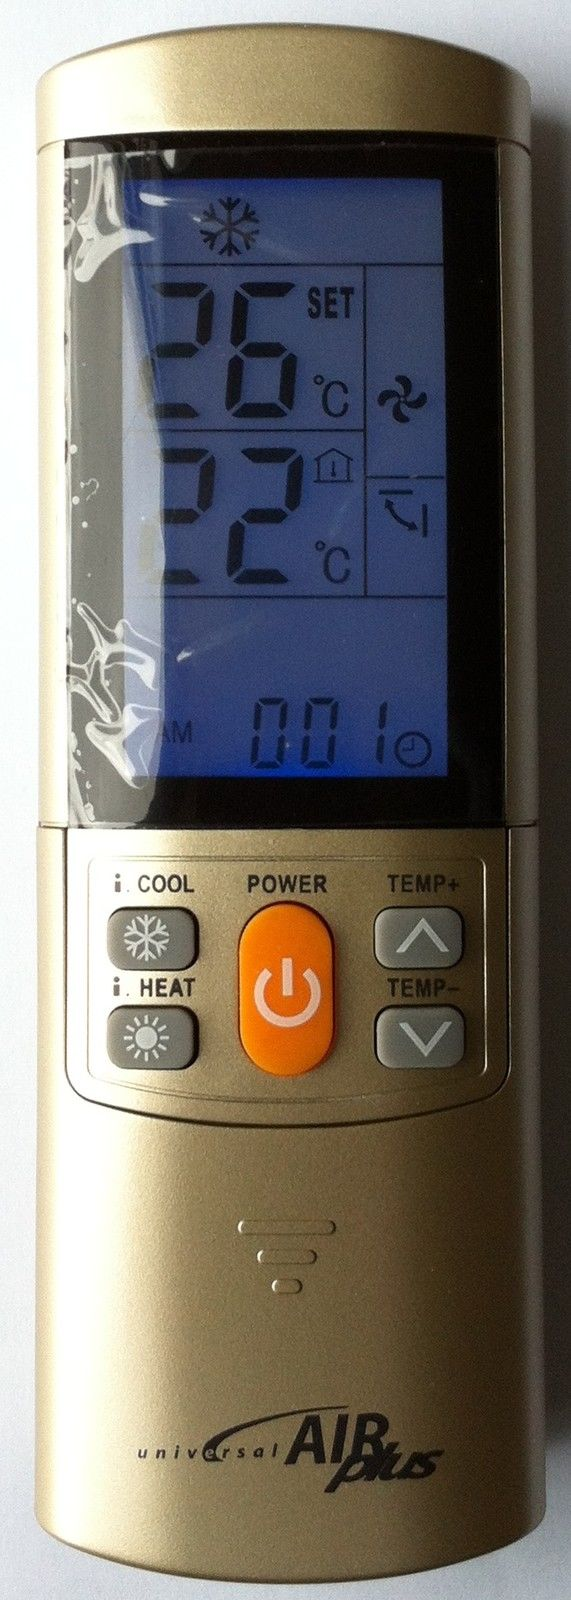 GENERAL ELECTRIC REPLACEMENT UNIVERSAL AIR CONDITIONER REMOTE CONTROL - GENERAL ELECTRIC AIR CON FULL FUNCTION